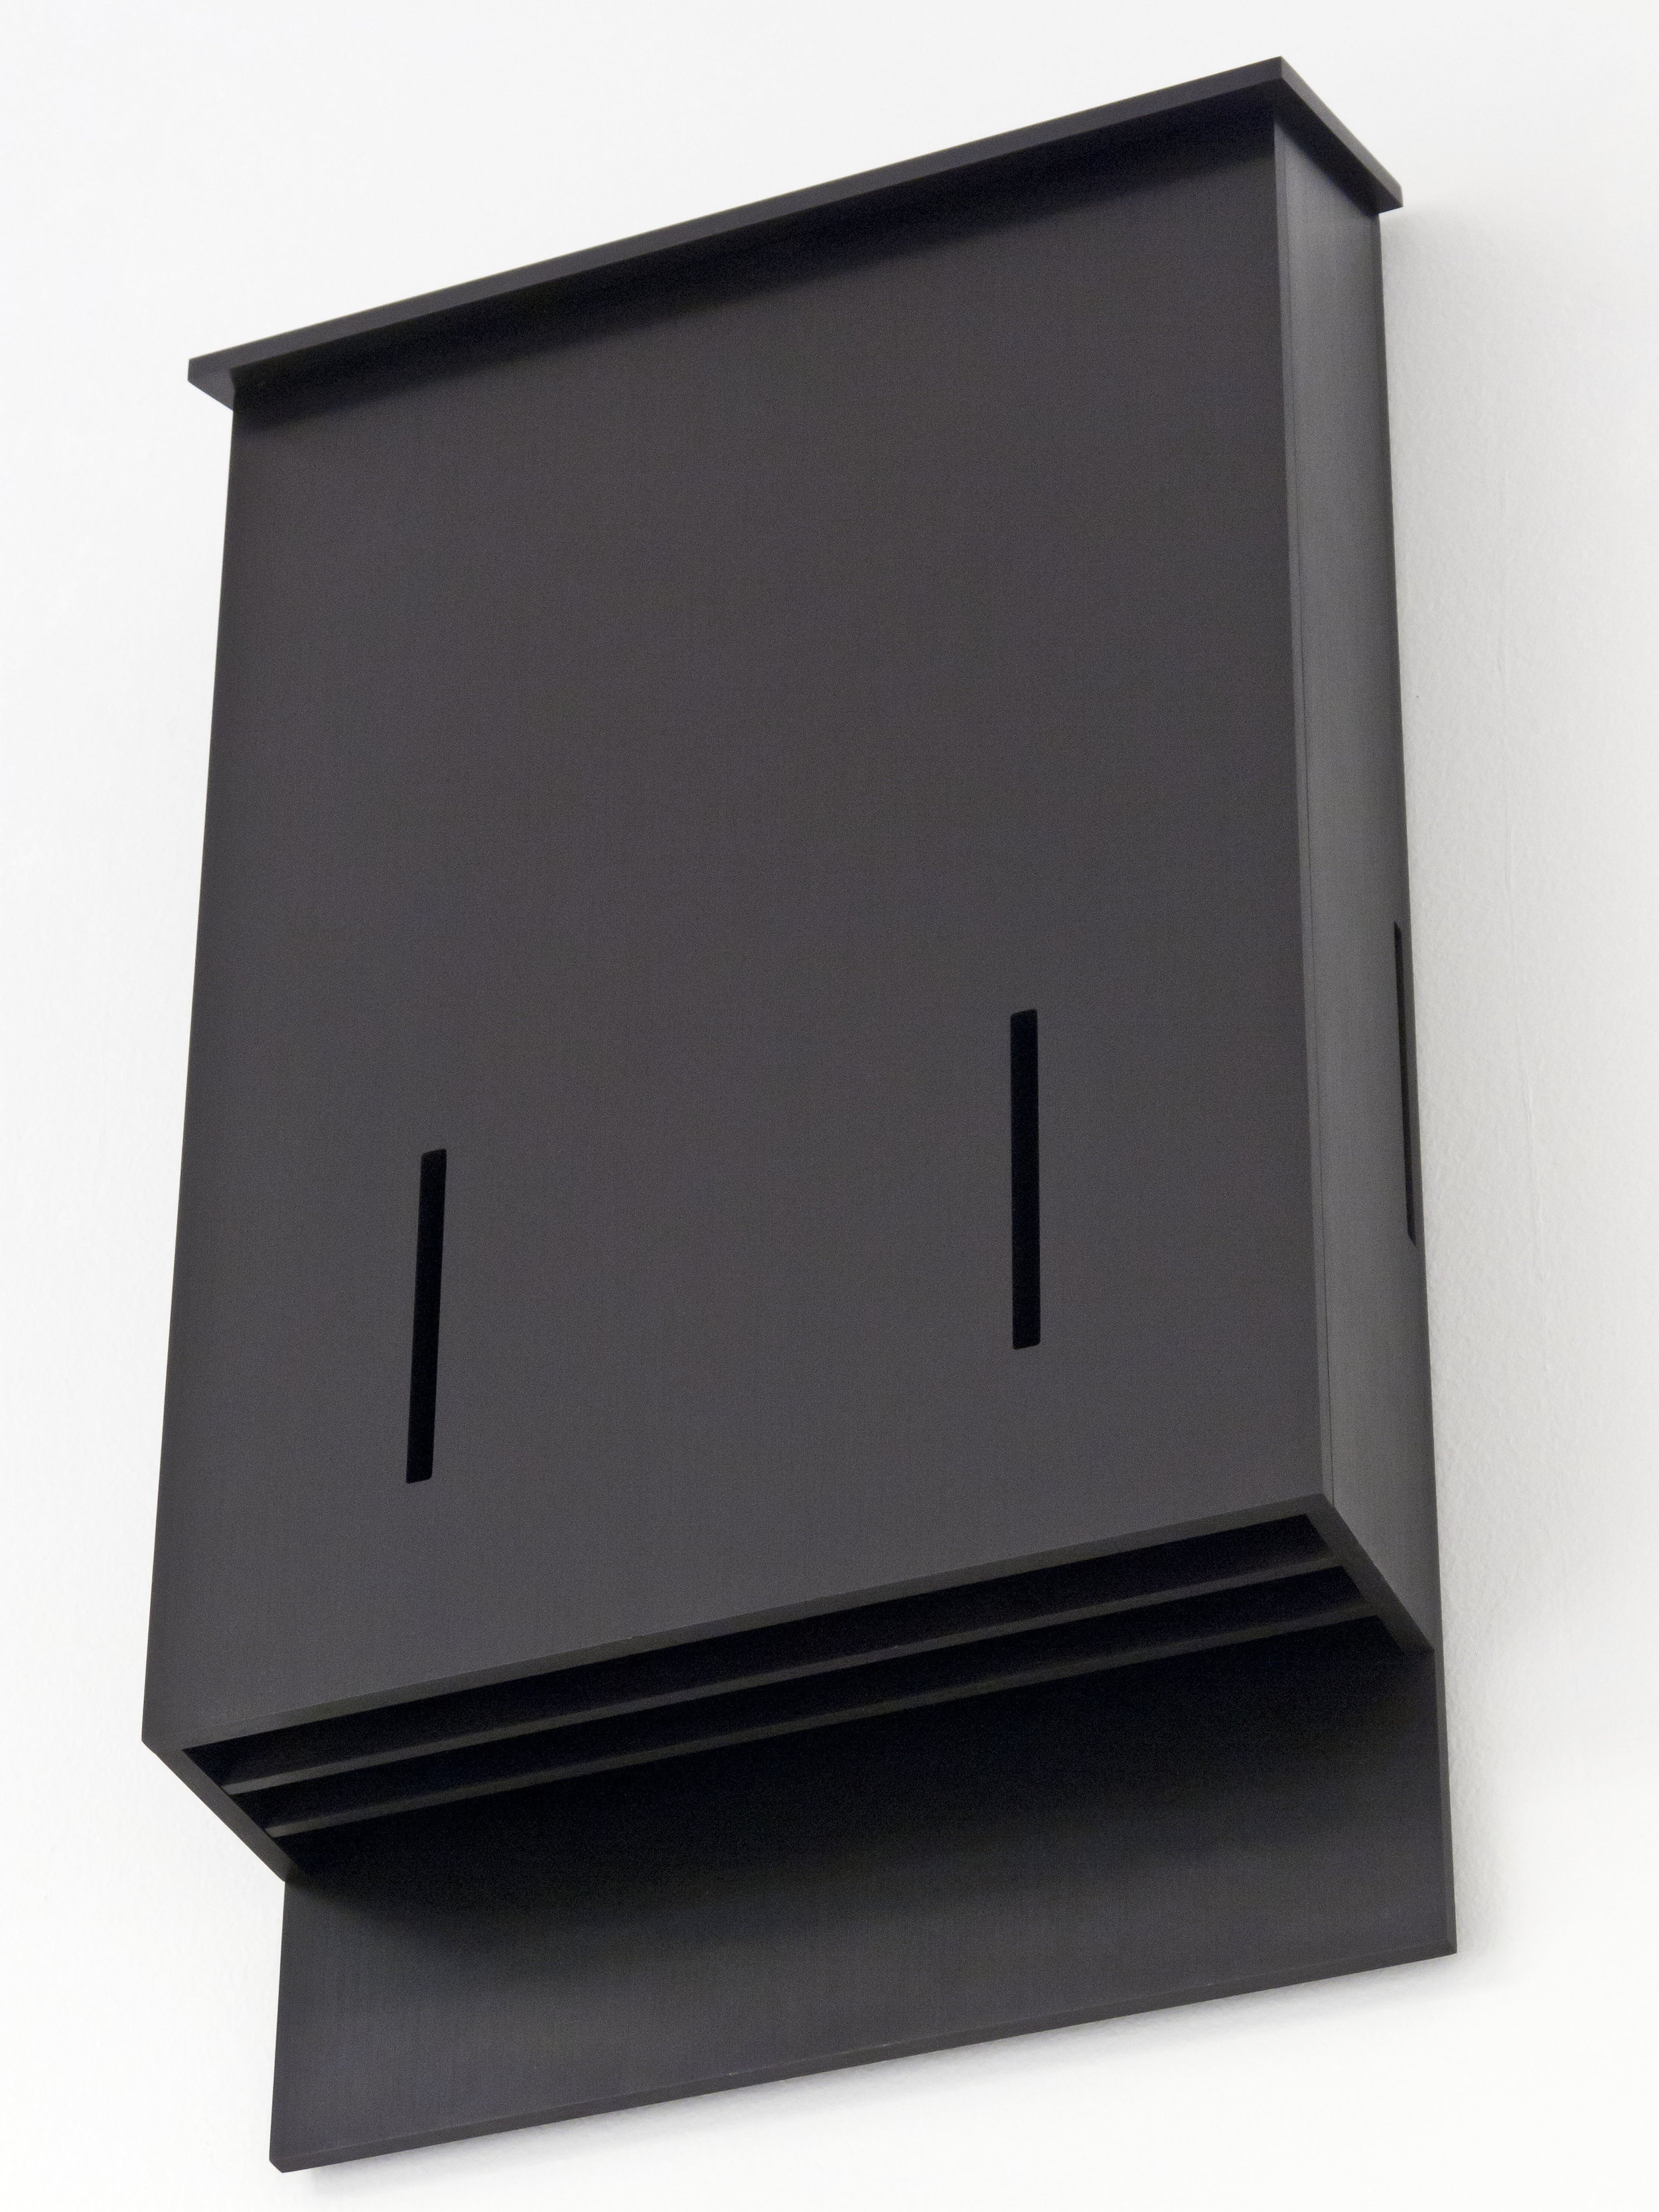 Bat House Prototype No. 1 , 2012 anodized aluminum 28-1/2 x 5-1/4 x 16-3/4 inches 72.4 x 13.3 x 42.5 cm Edition of 3, with 1 AP